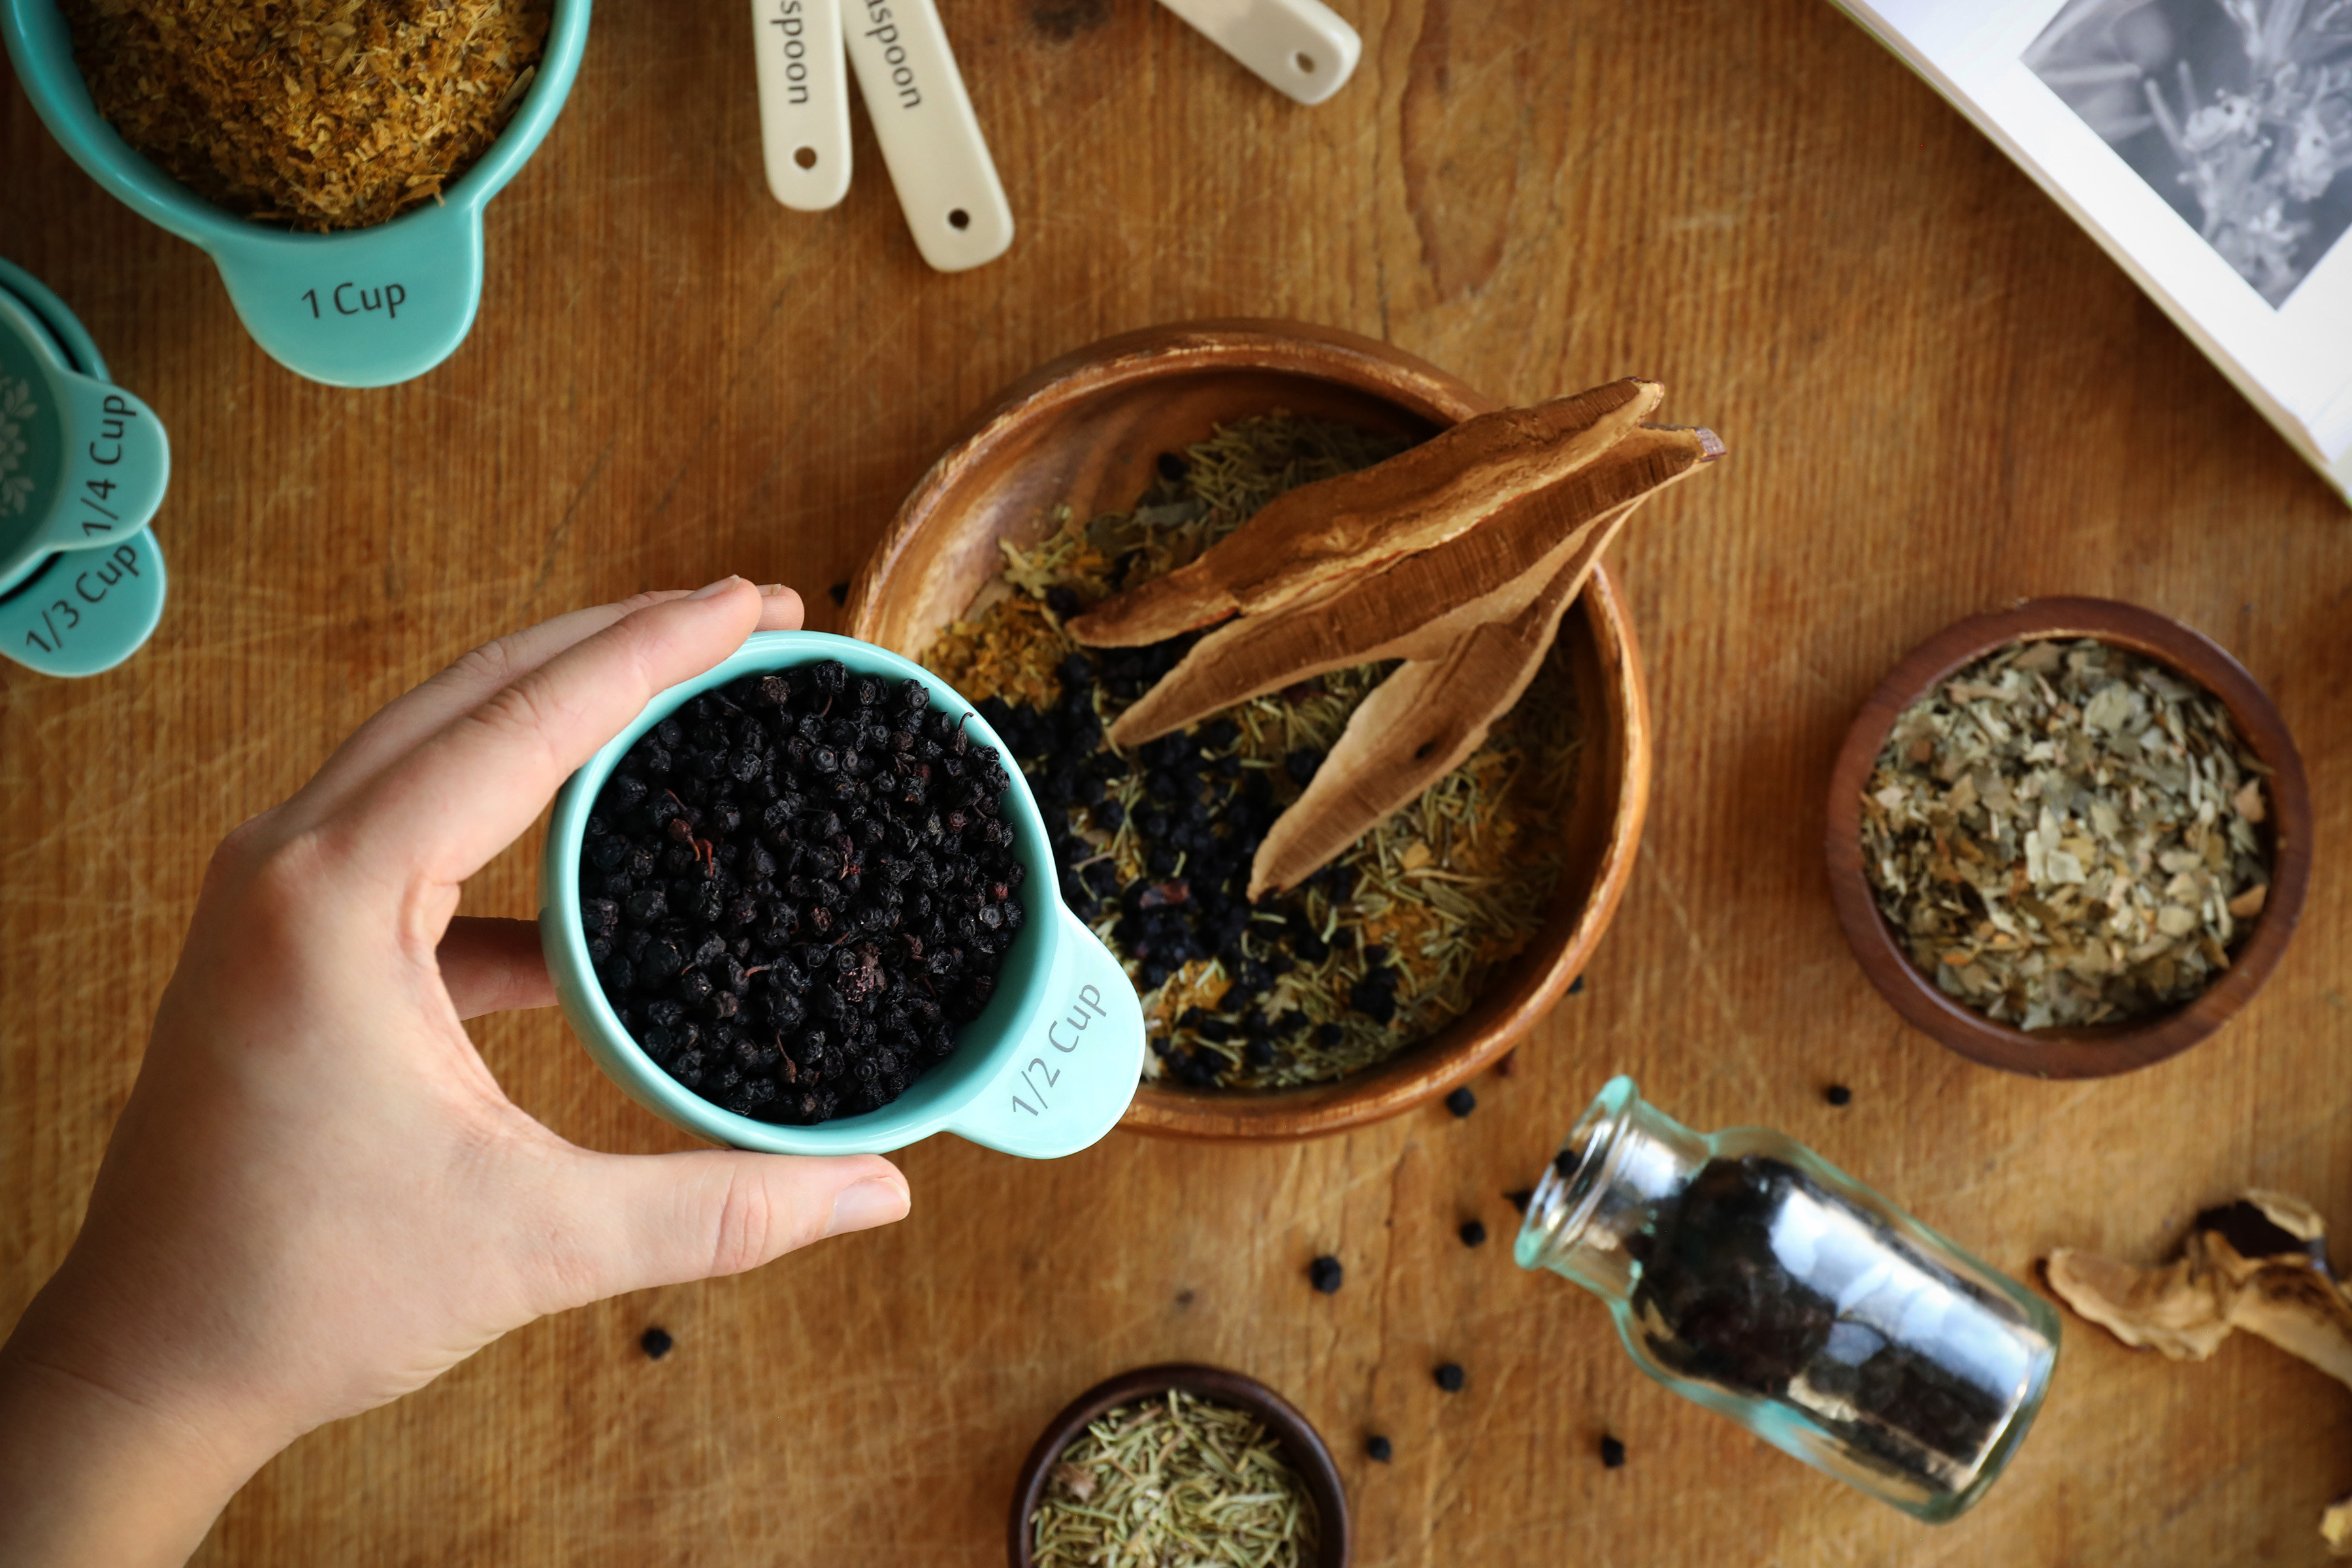 Using a half cup measuring vessel to pour organic dried bilberries into an herbal formula is simple when measuring in parts.